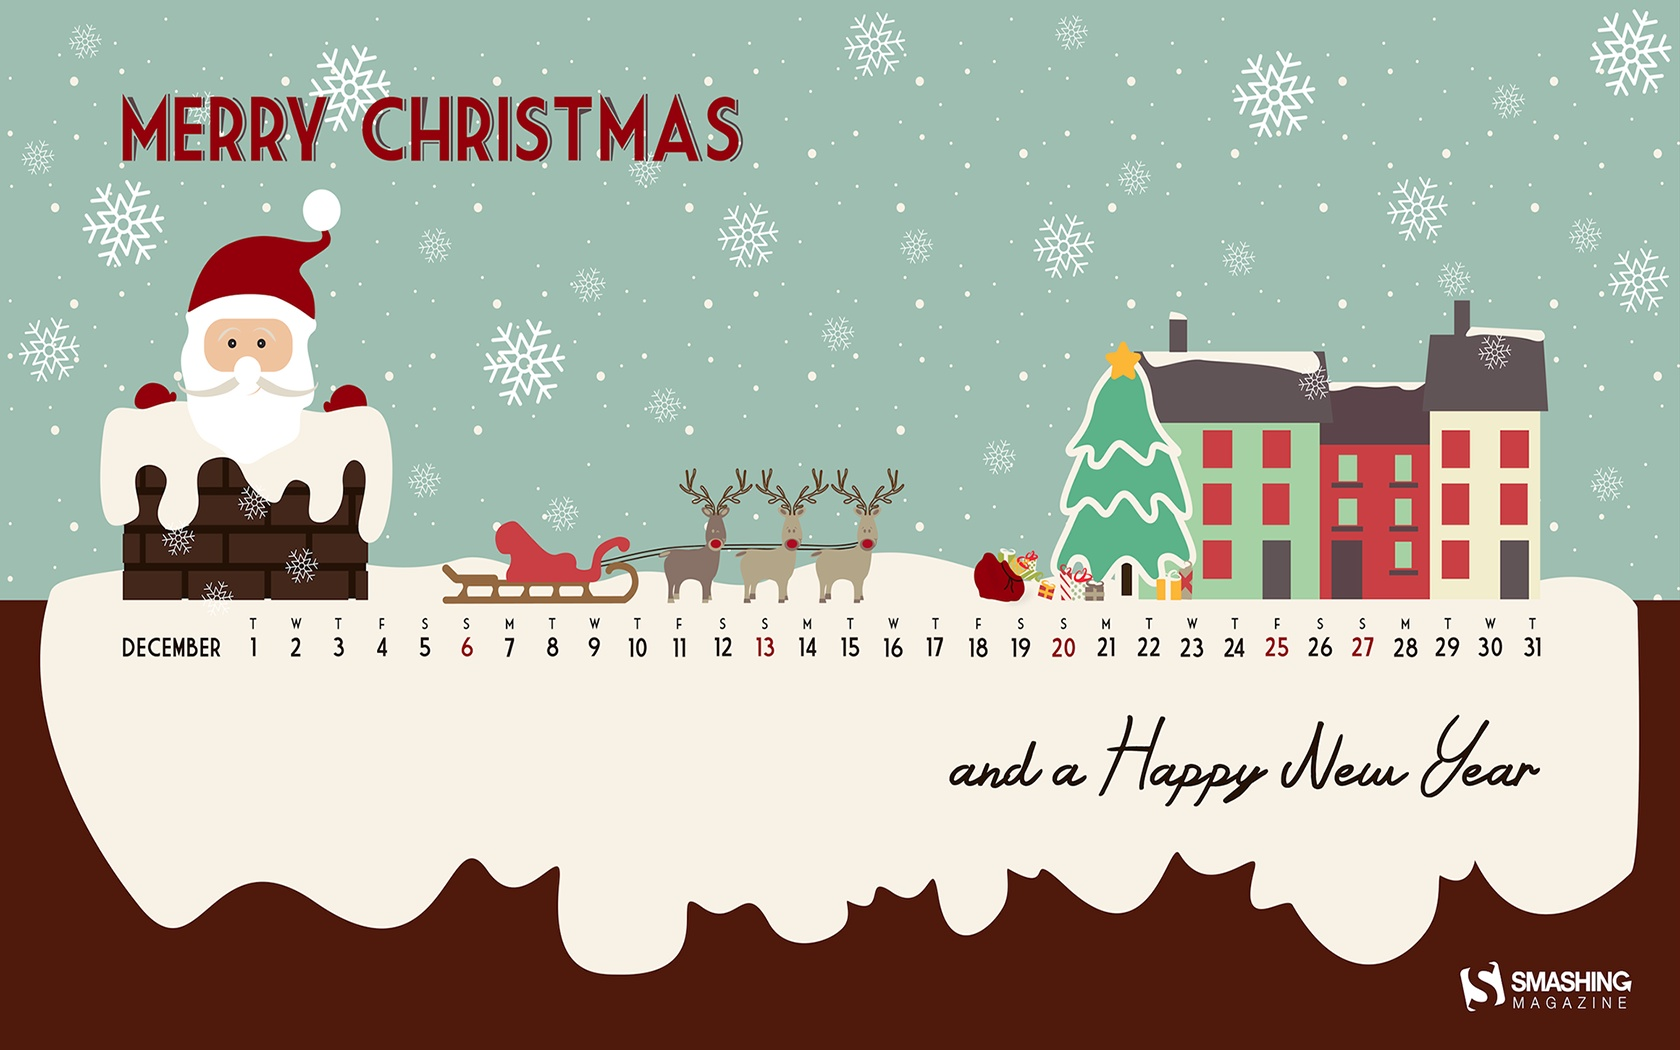 Month calendar Christmas desktop wallpaper 52521